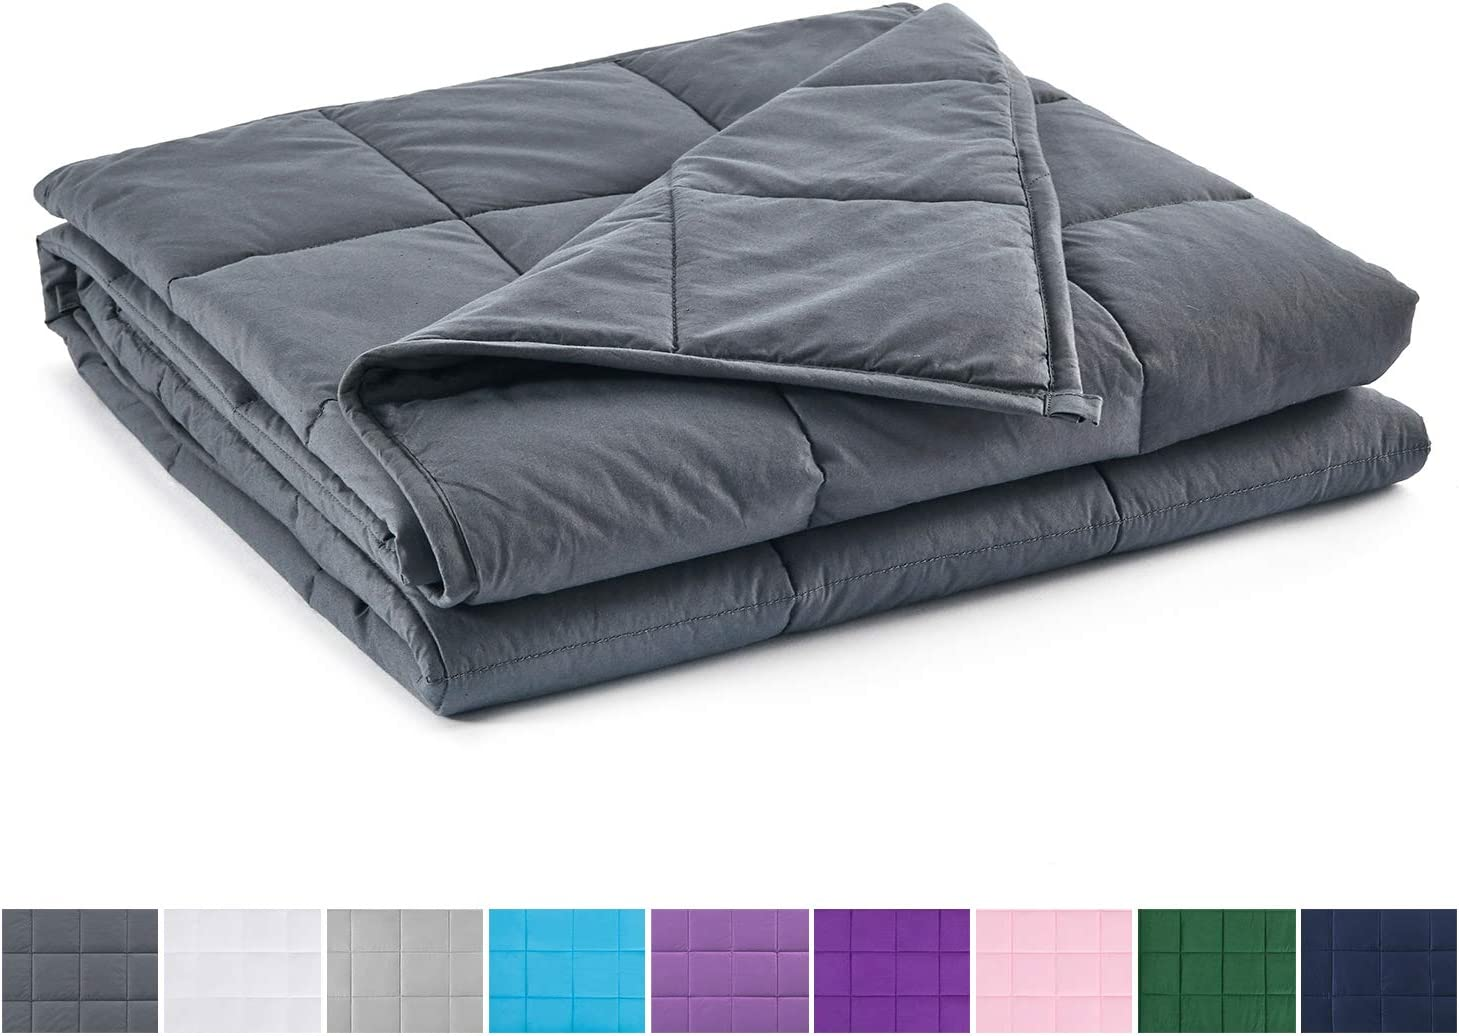 17lbs Weighted Blanket Queen//King Size Crystal Velvet Fabric w//Glass Beads Gray